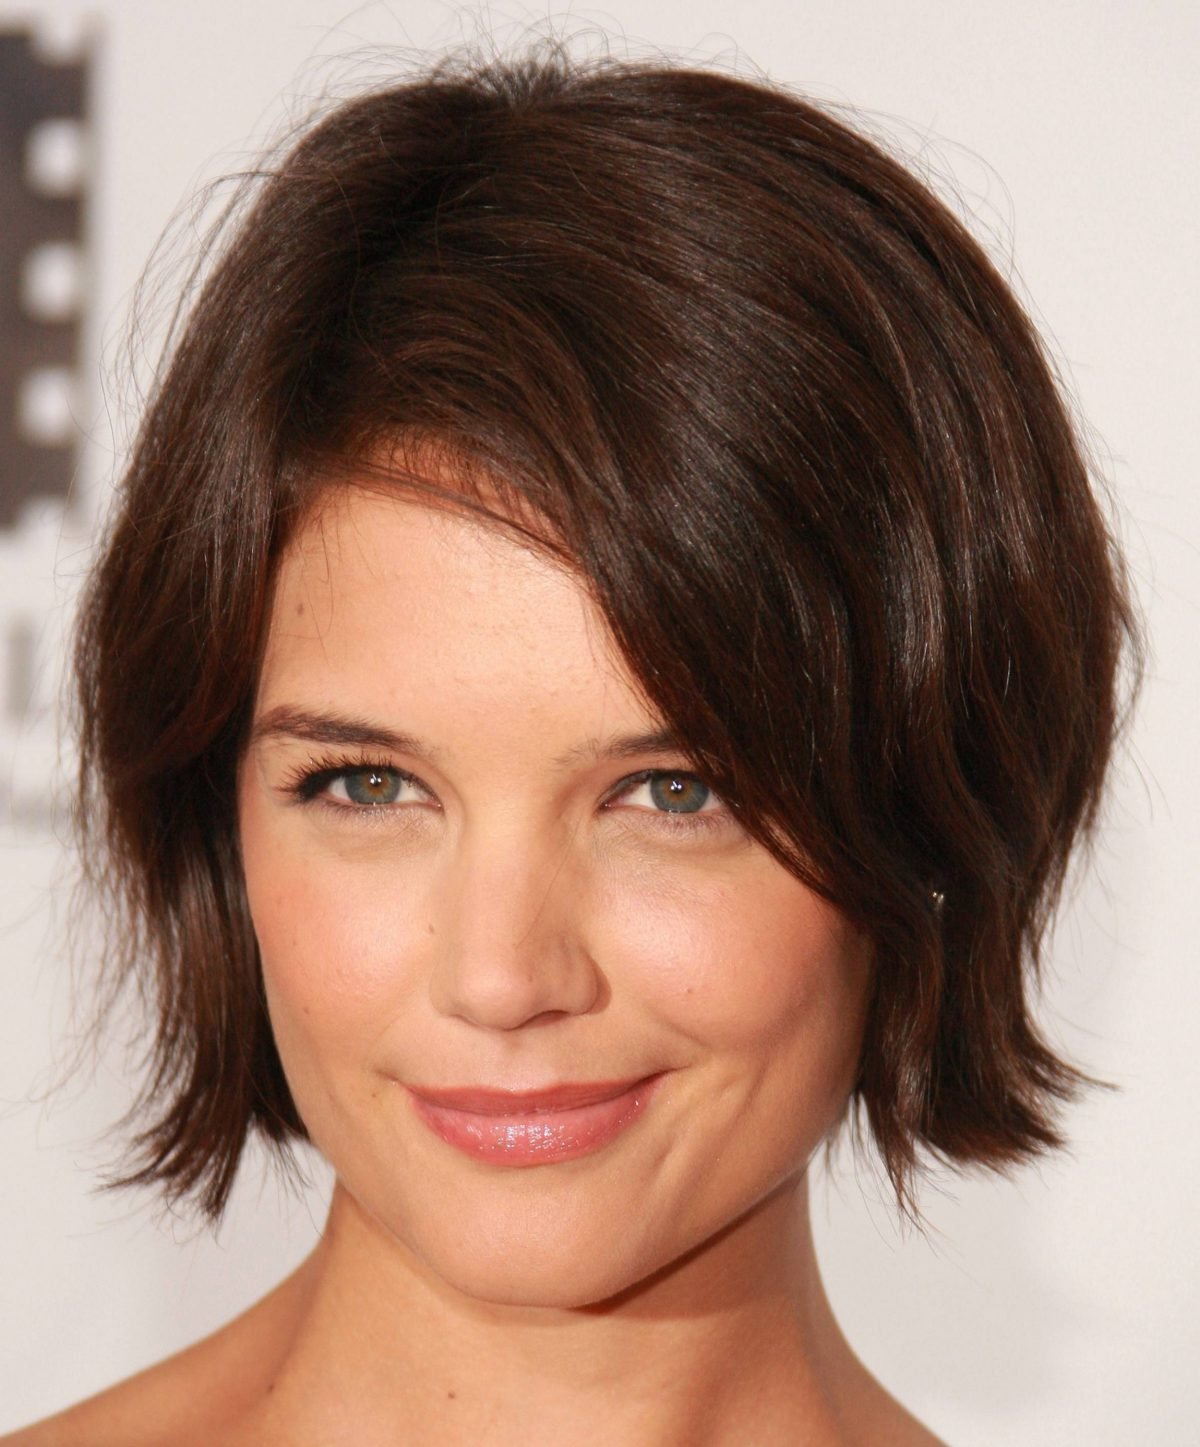 Best Short Hairstyles – Cute Hair Cut Guide For Round Face Shape Regarding Super Short Hairstyles For Round Faces (View 12 of 25)